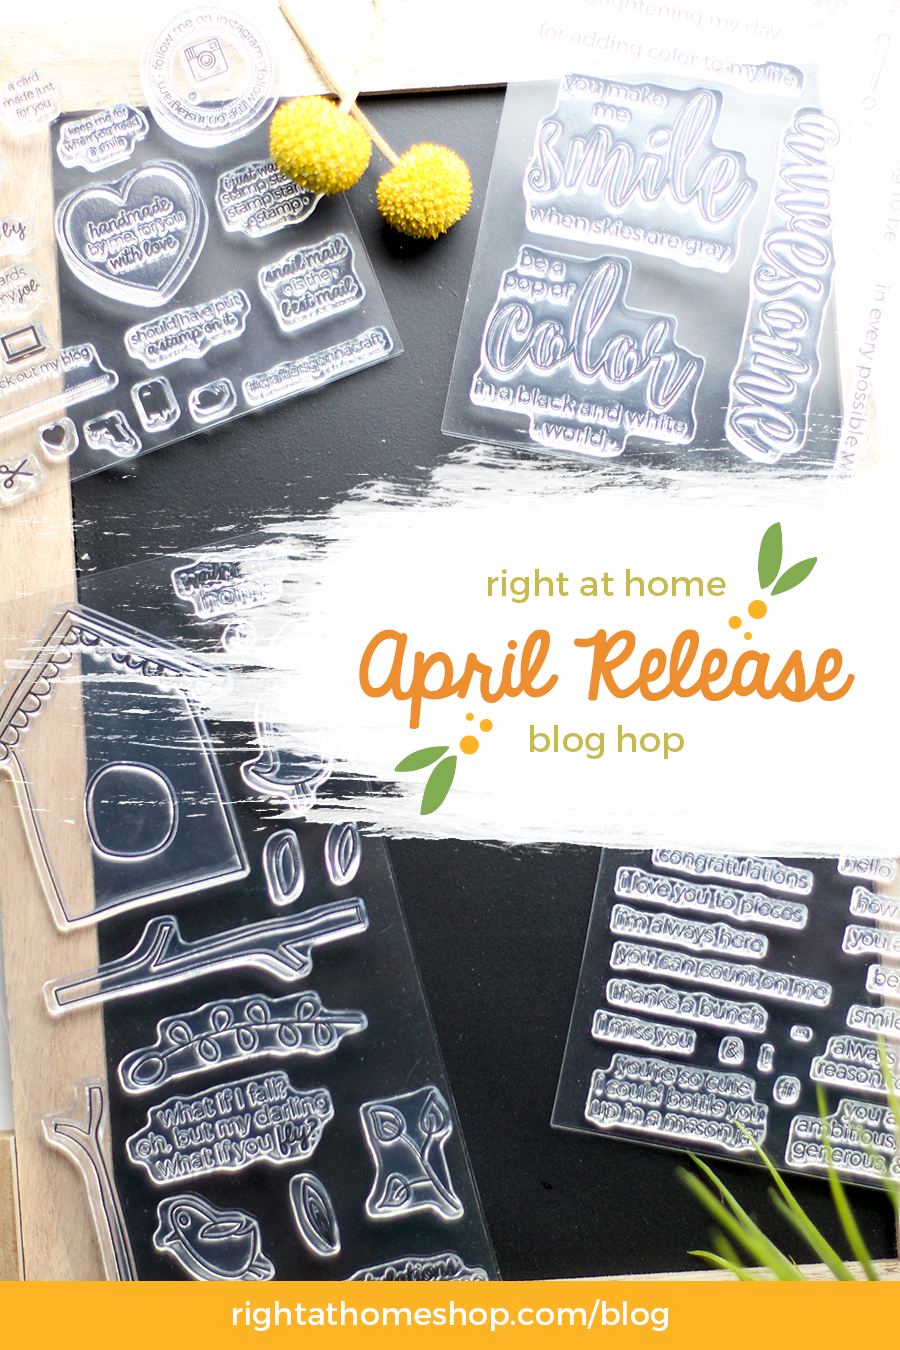 Right at Home Stamps April Release Blog Hop - rightathomeshop.com/blog